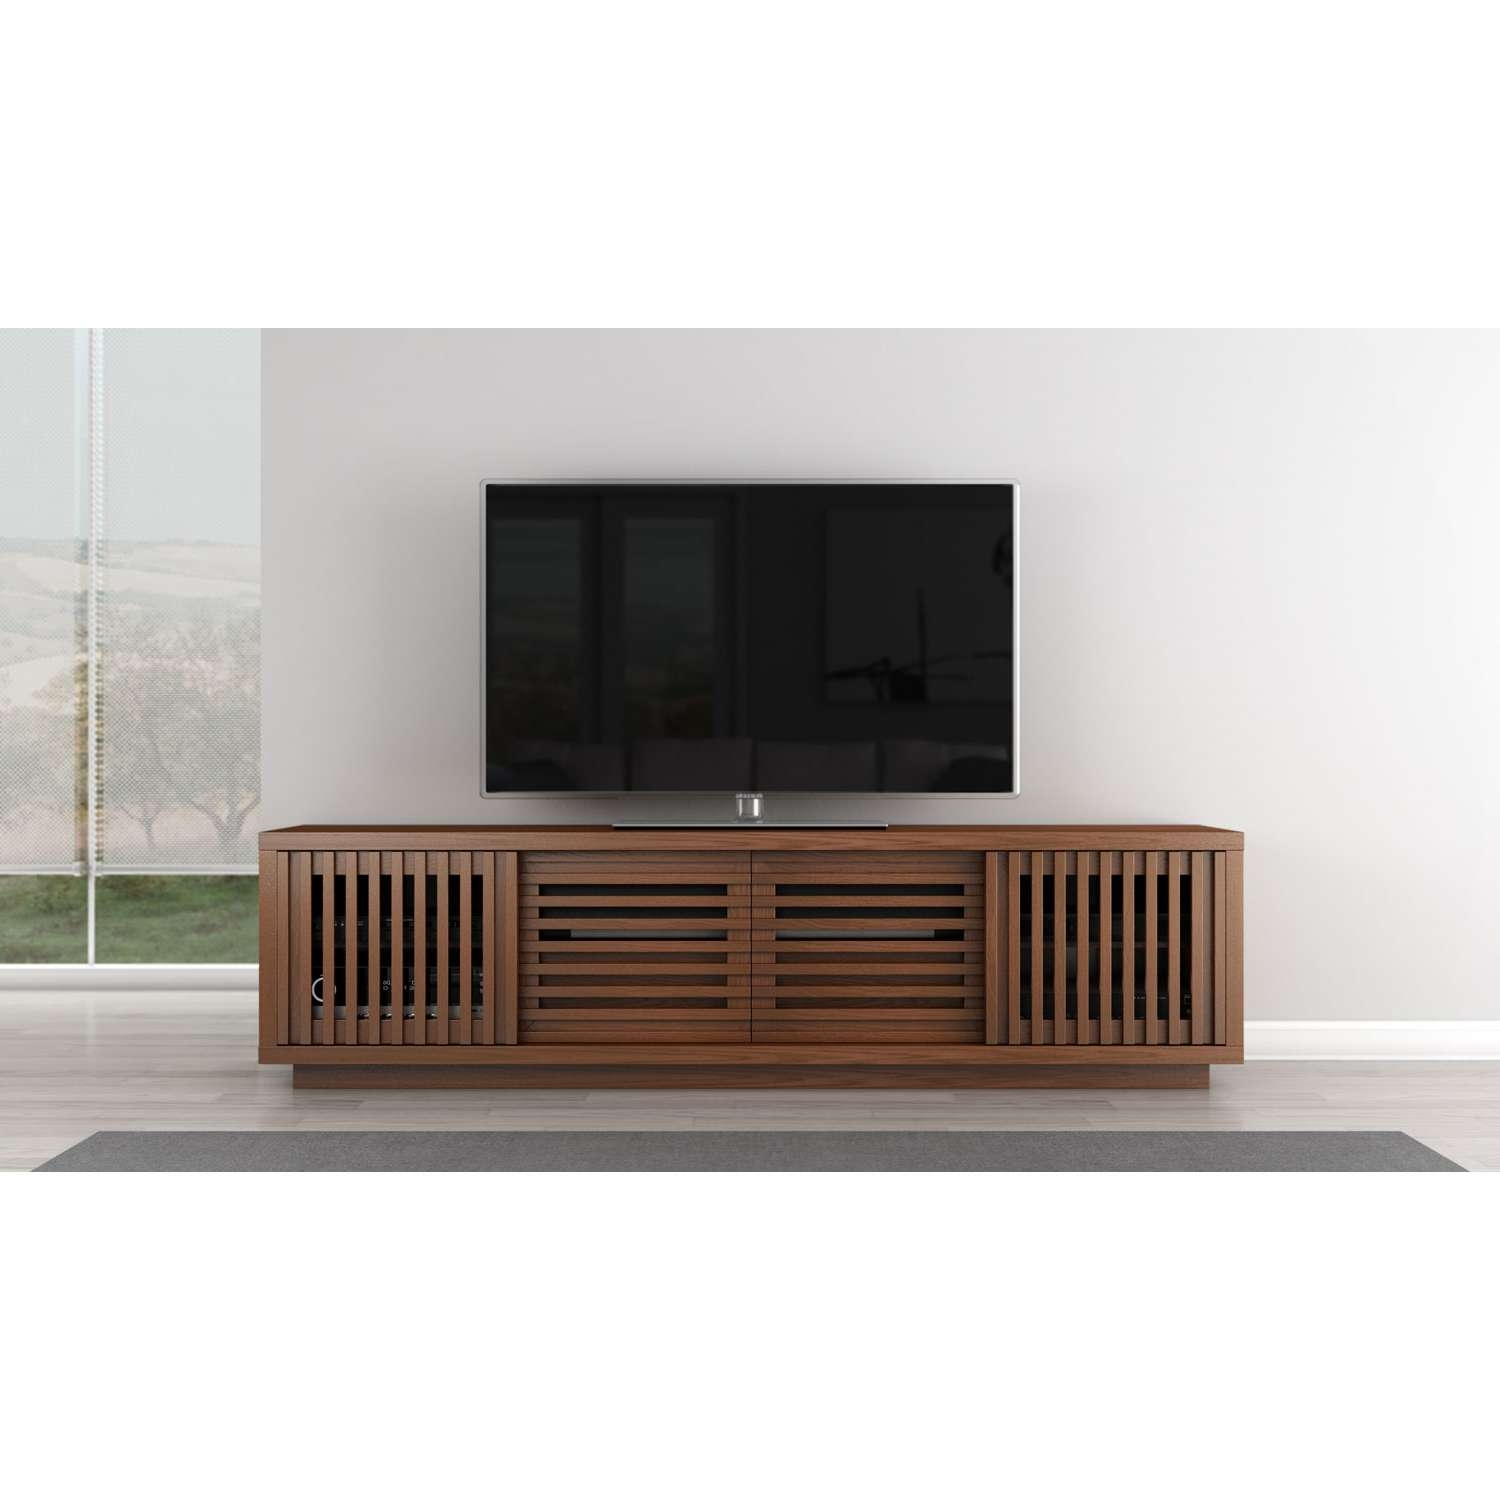 Signature Contemporary Rustic 82 Inch Warm Honey Finished White Regarding White Wood Tv Stands (View 13 of 15)